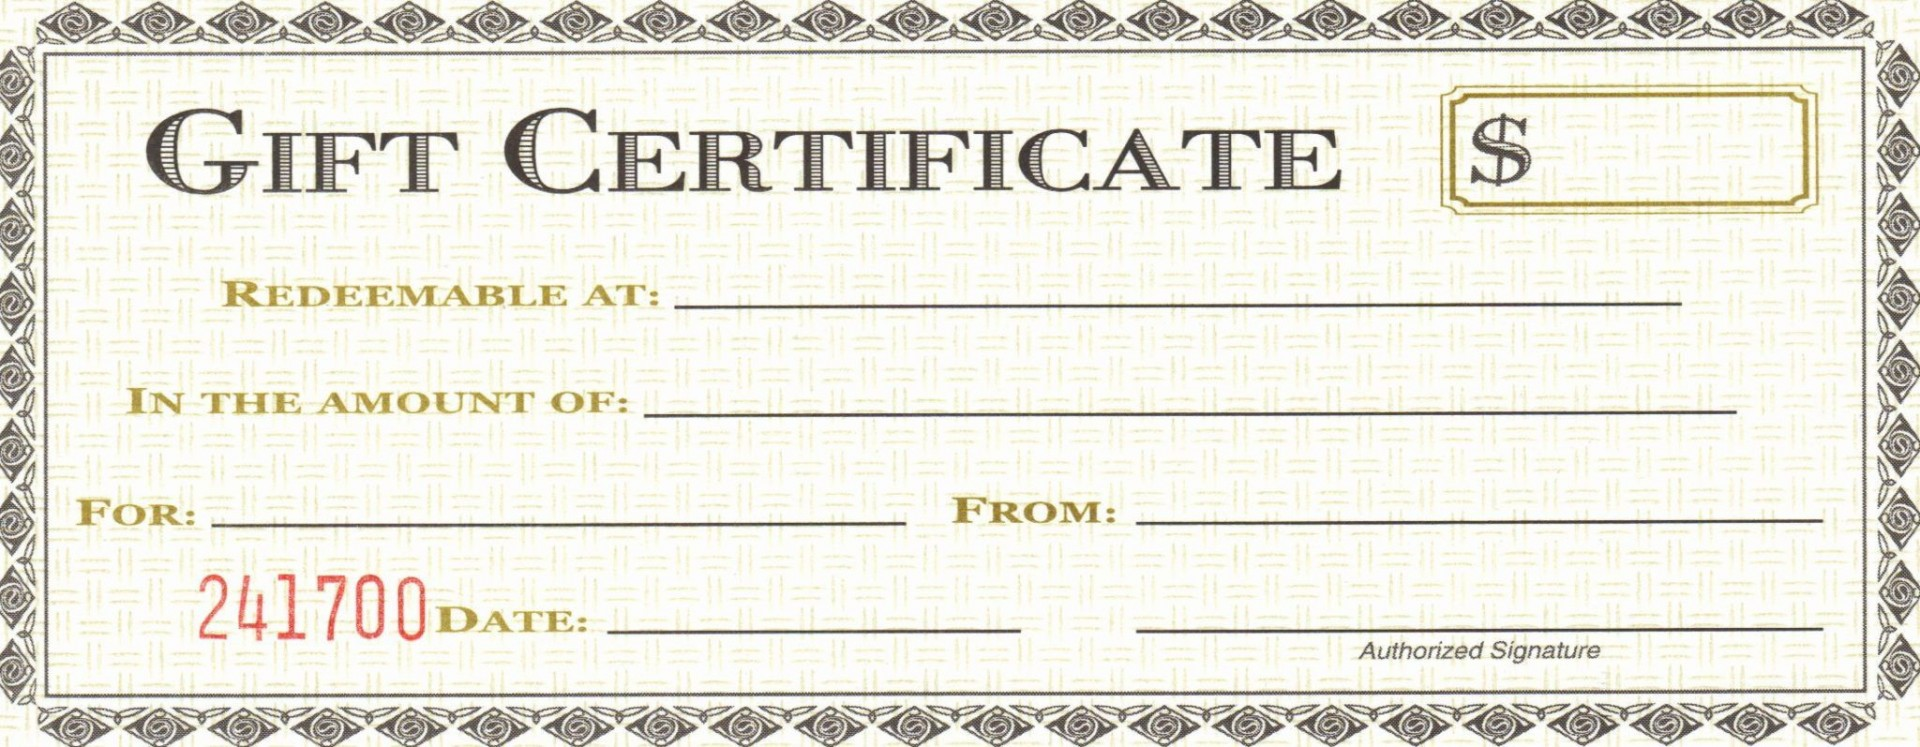 004 Remarkable Printable Gift Certificate Template High Resolution  Card Free Christma Massage1920